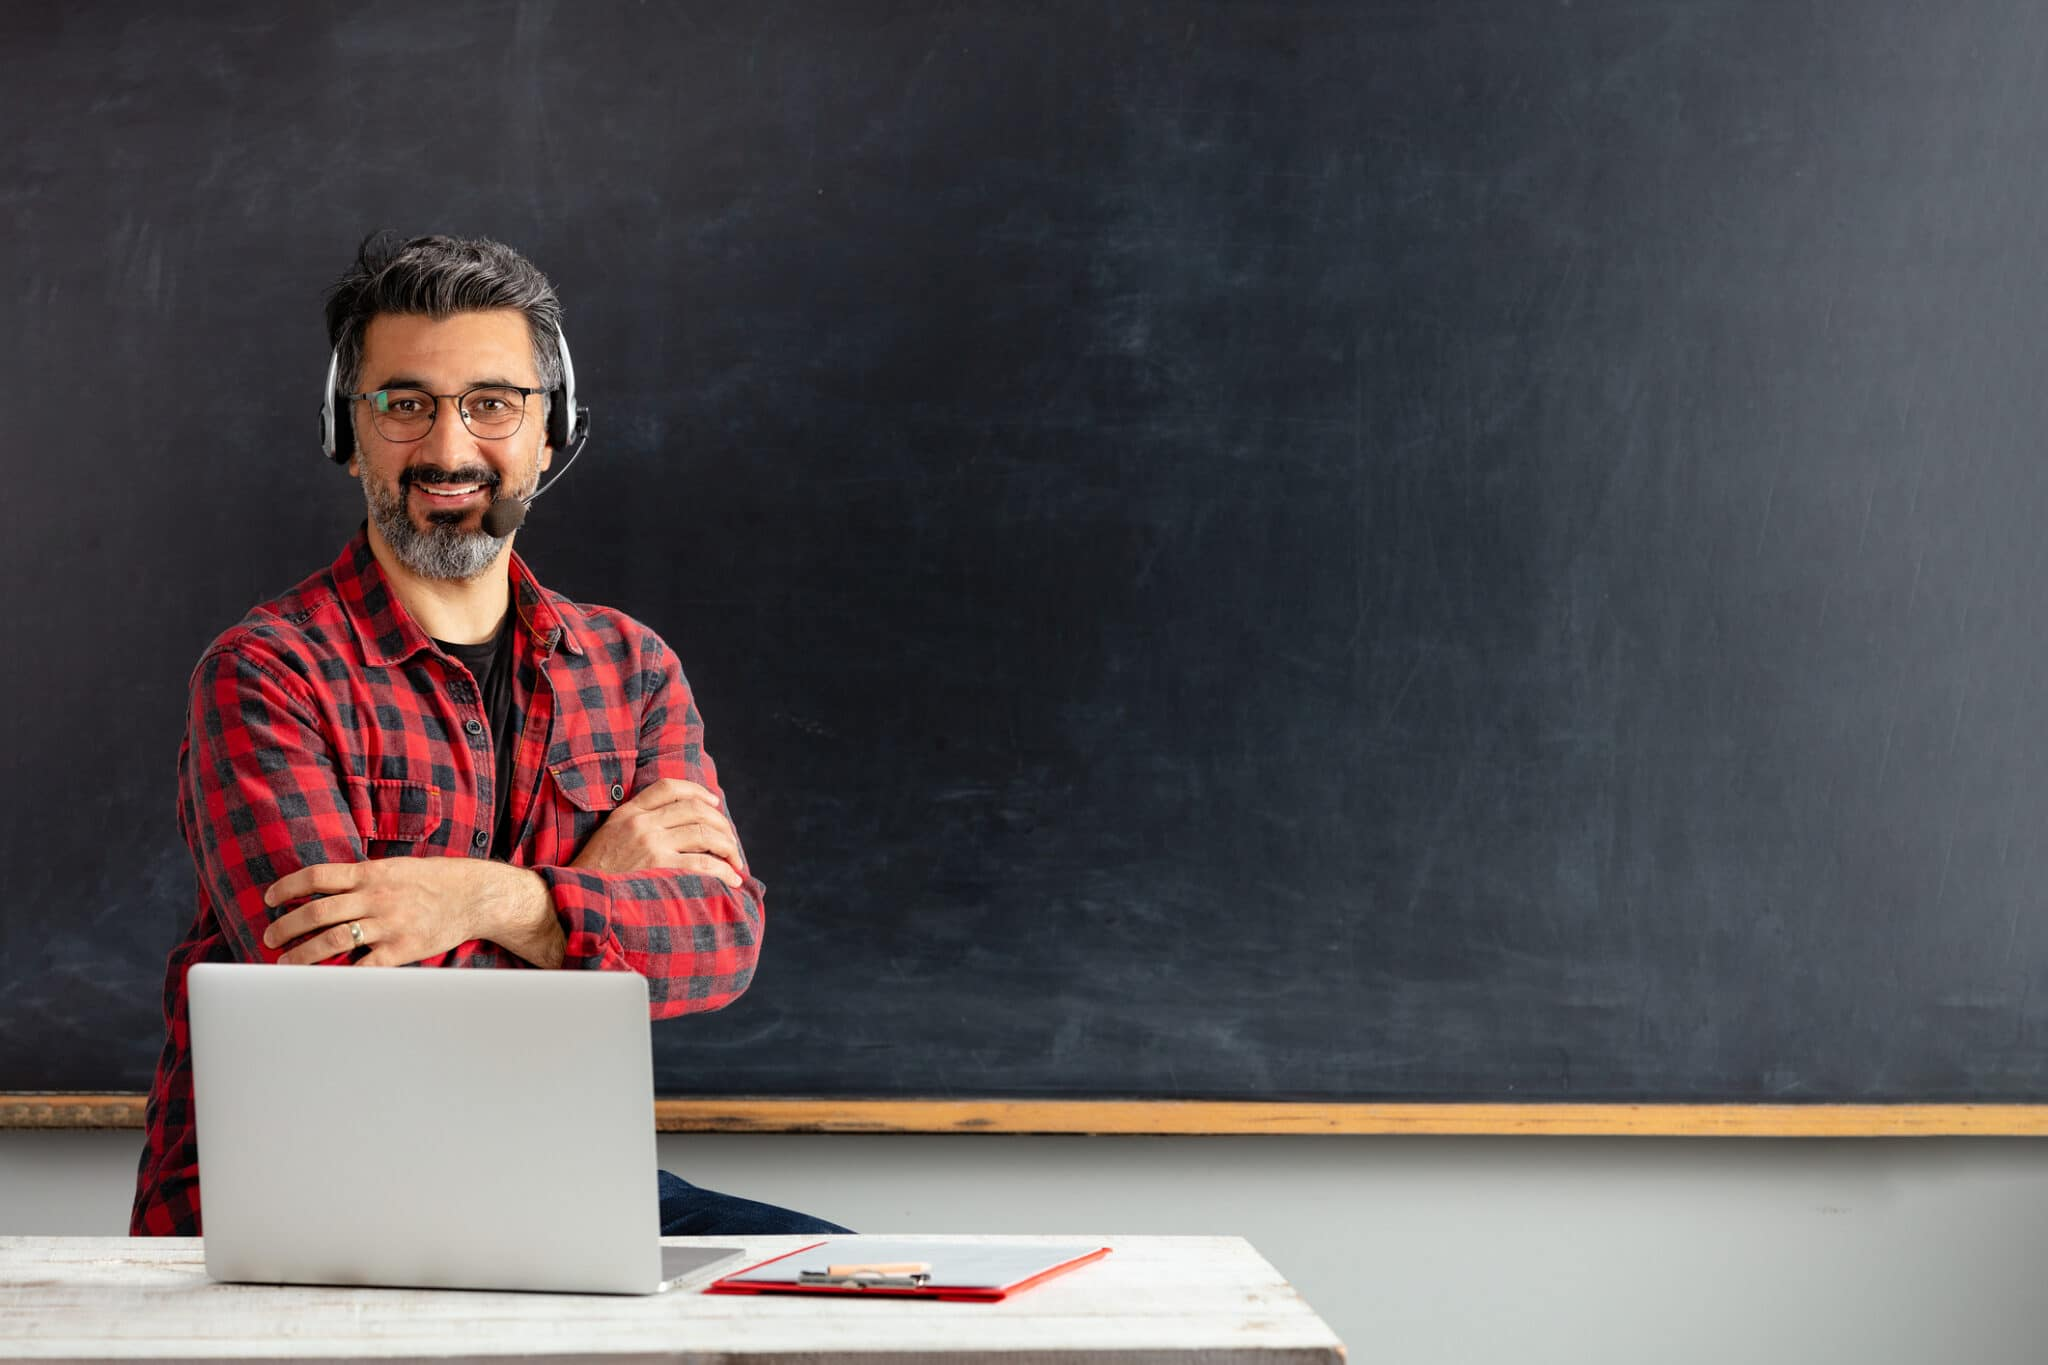 Three Advantages of Modernizing Faculty Hiring with Interfolio Faculty Search